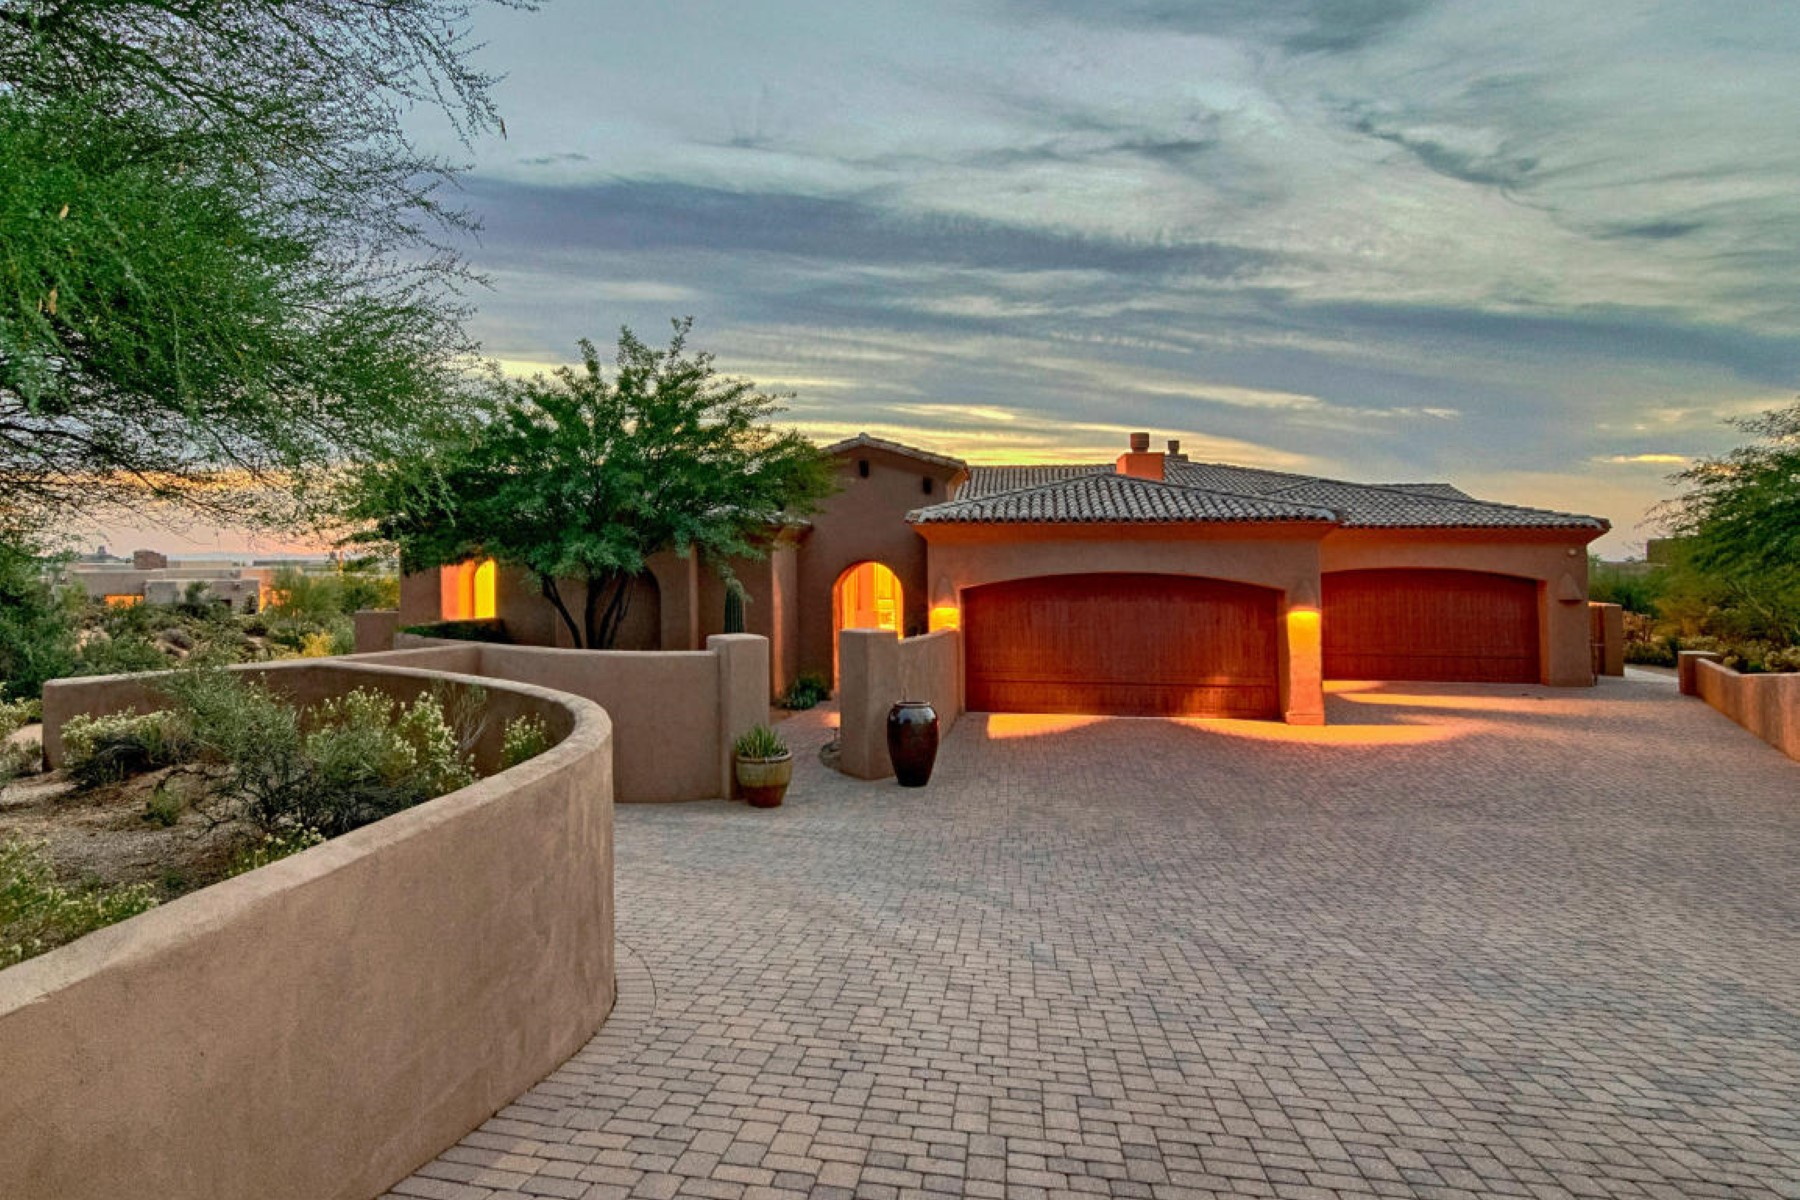 Einfamilienhaus für Verkauf beim Wonderful Single Level Home in the Village of Turquoise Ridge in Desert Mountain 40160 N 105th Place Scottsdale, Arizona, 85262 Vereinigte Staaten